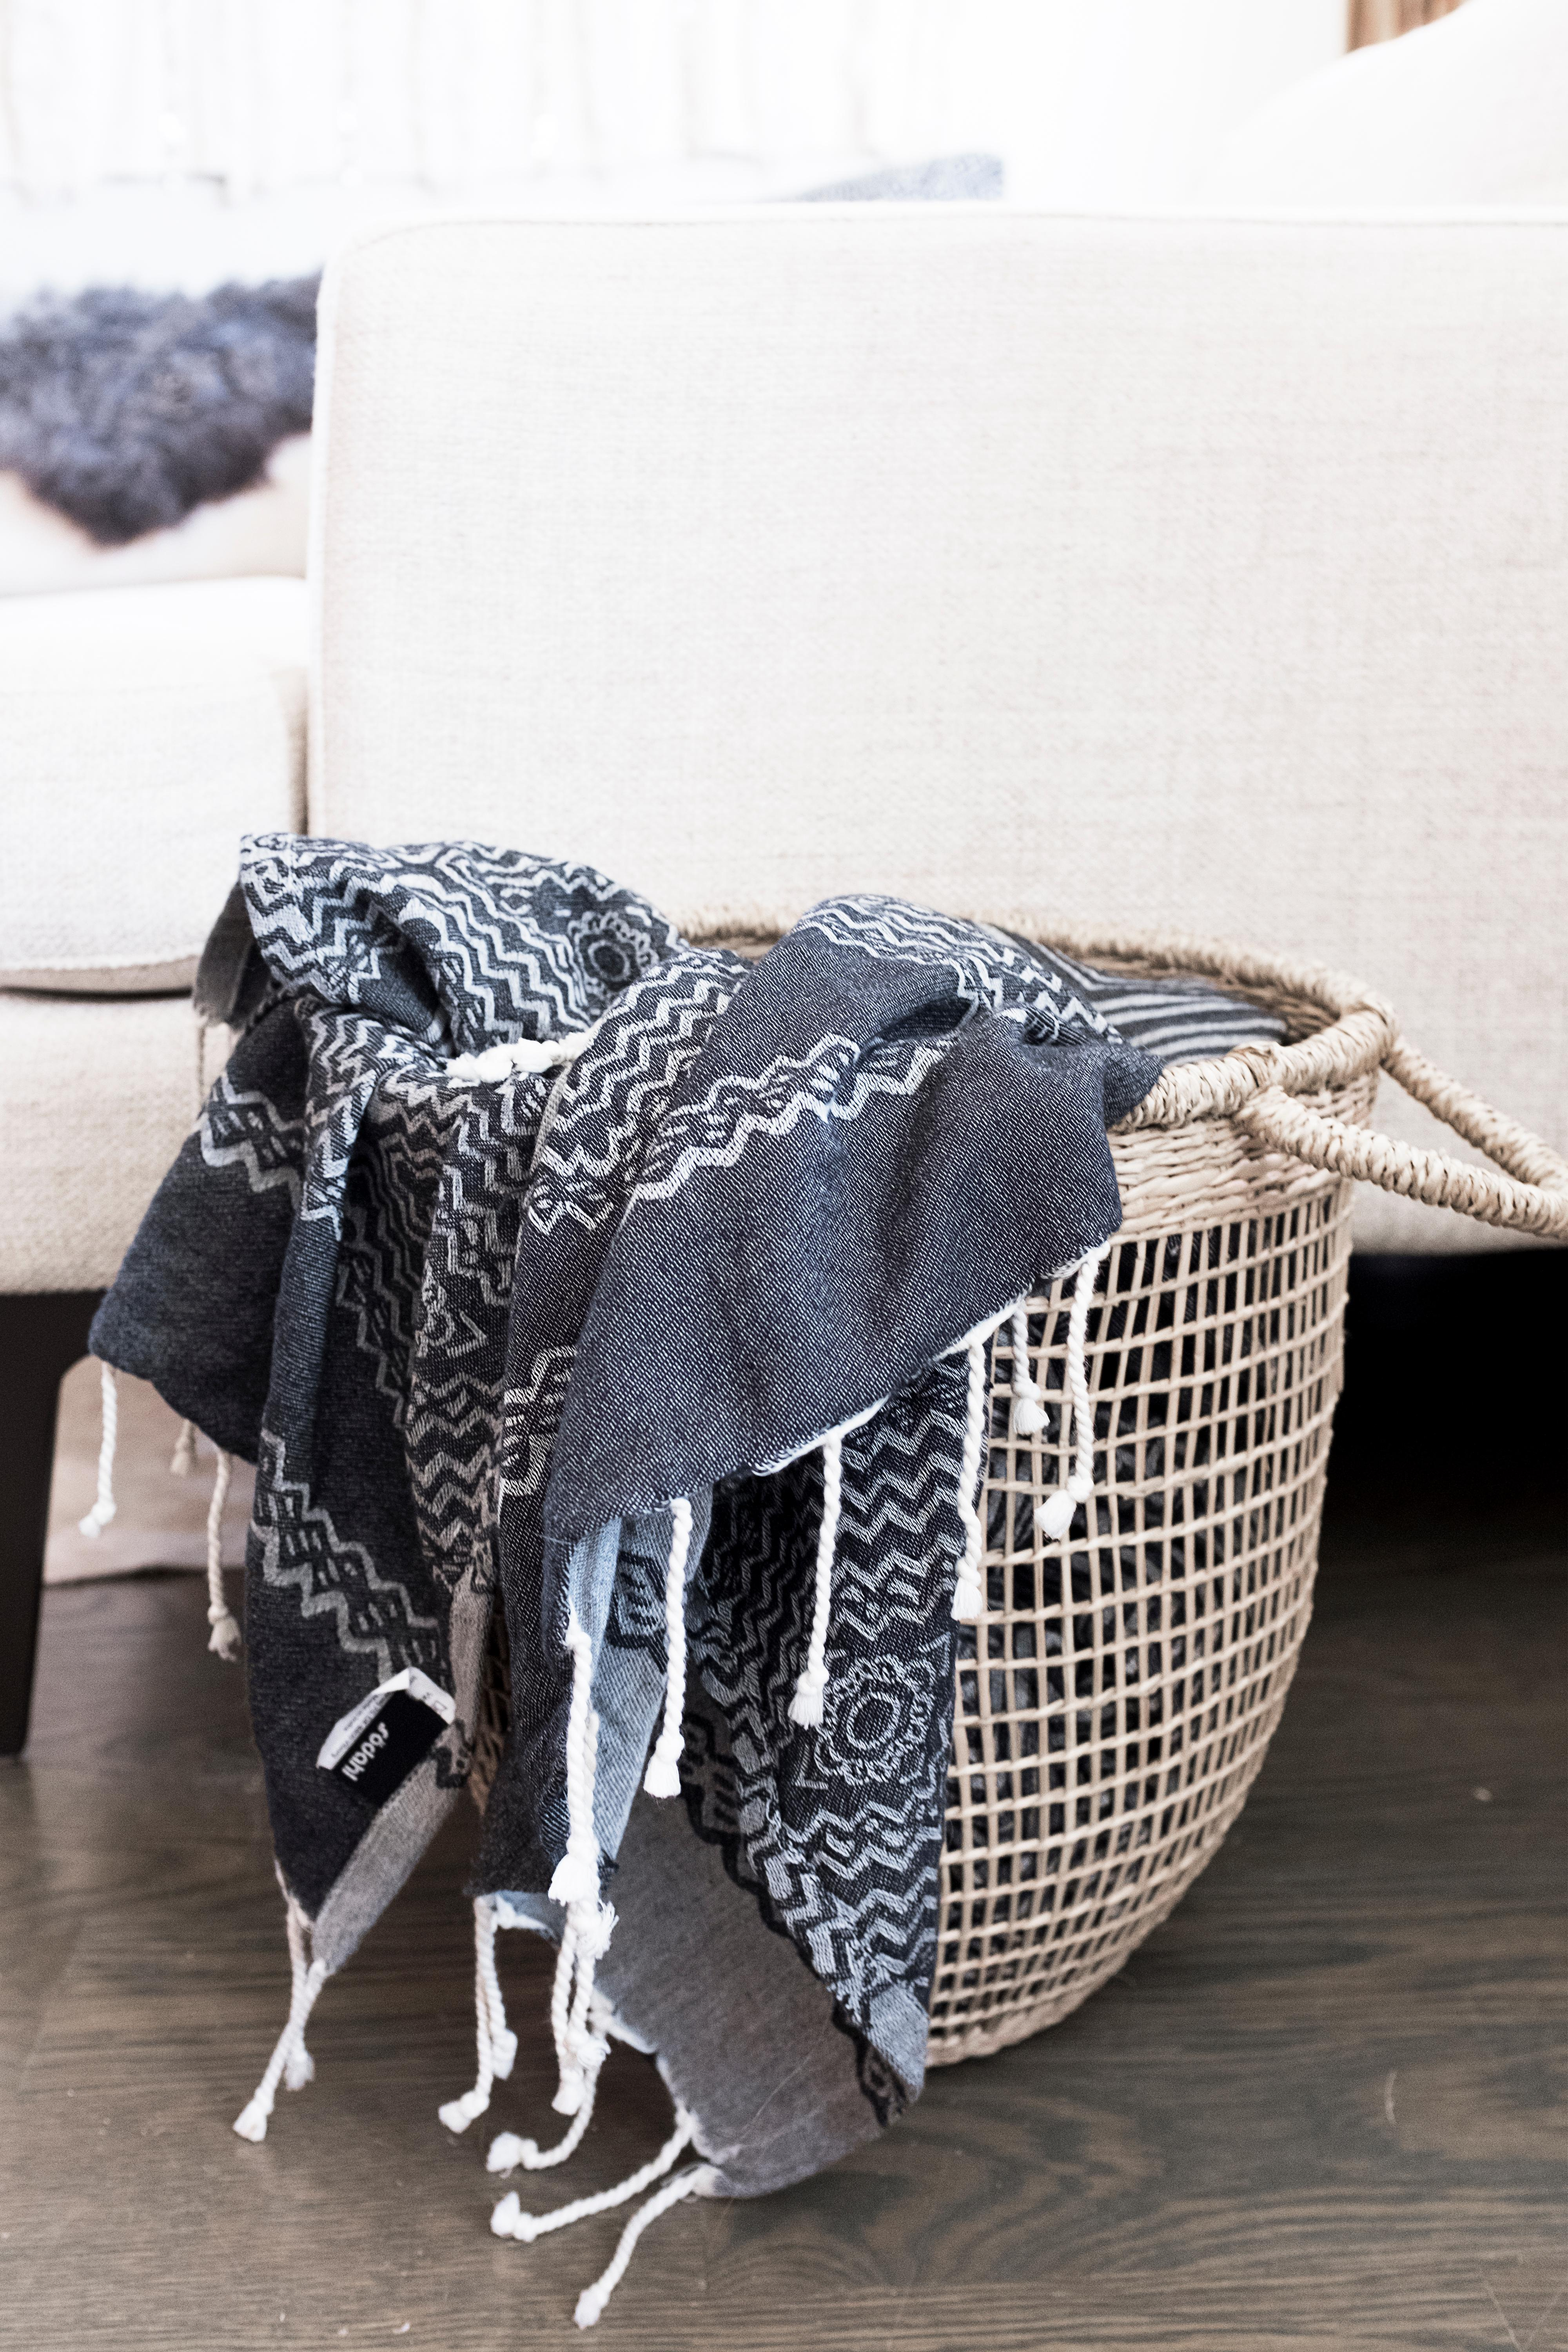 Finally, use a basket at the end of the couch to hold a lighter throw blanket for those warmer spring nights. (Image: Ashley Hafstead)